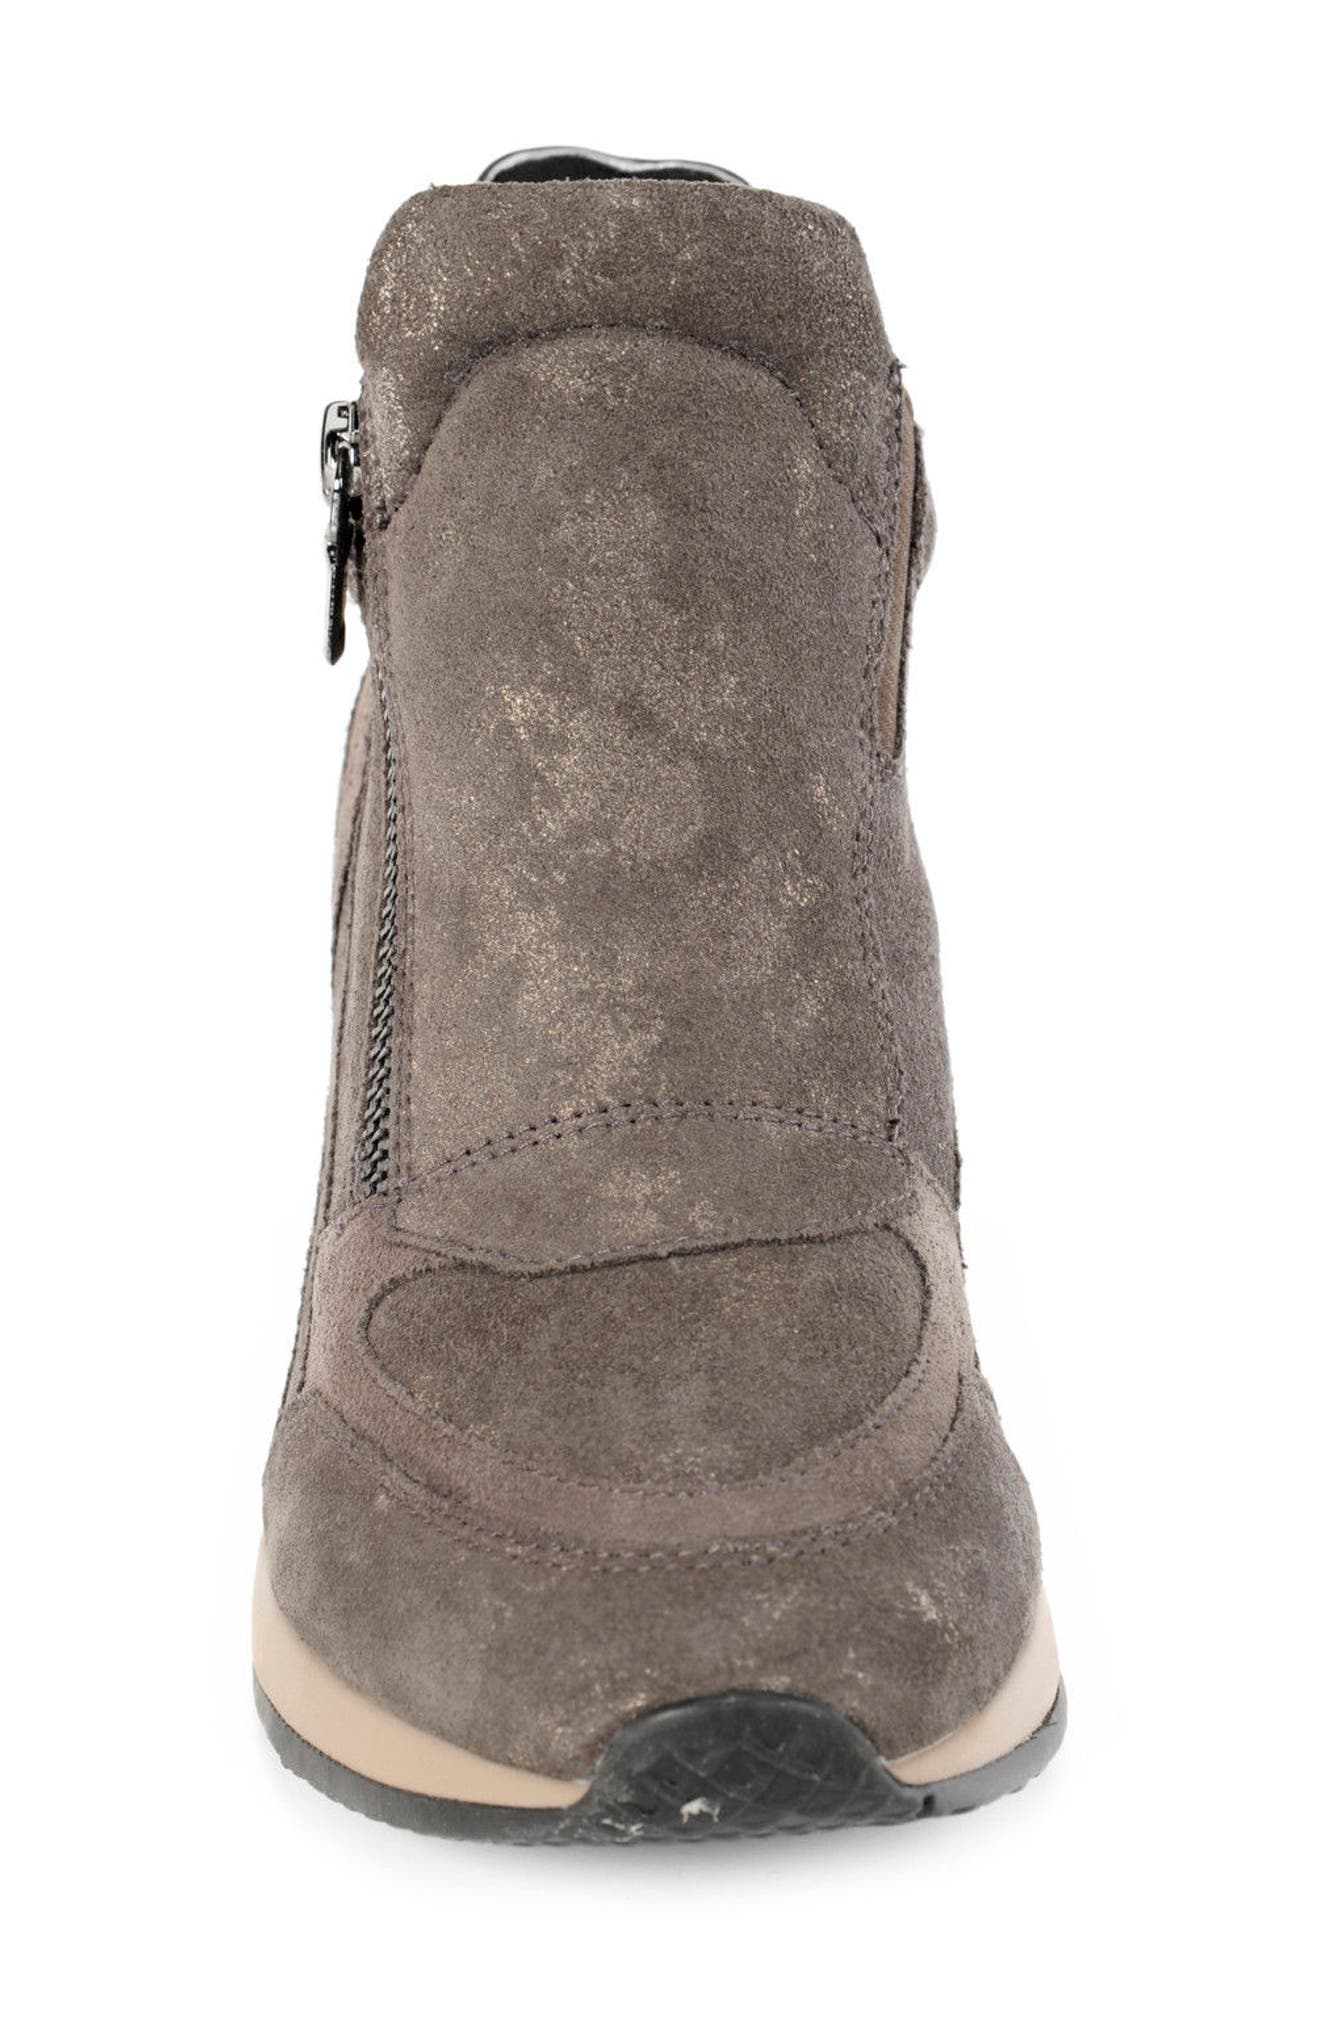 Nydame Wedge Sneaker,                             Alternate thumbnail 4, color,                             Dark Grey Leather